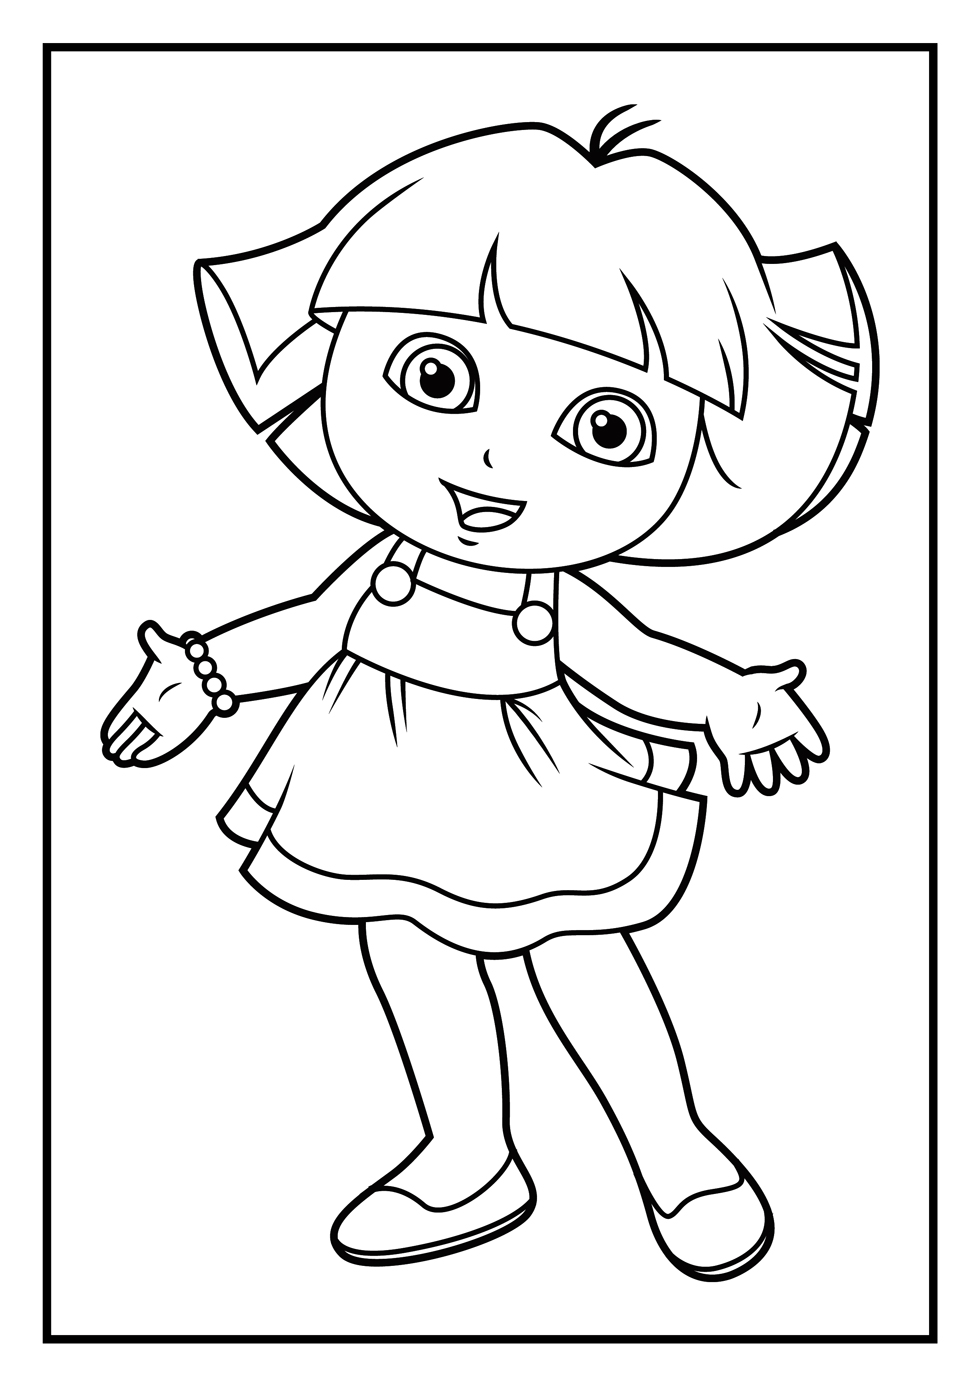 dora the explorer coloring page dora the explorer coloring pages only coloring pages